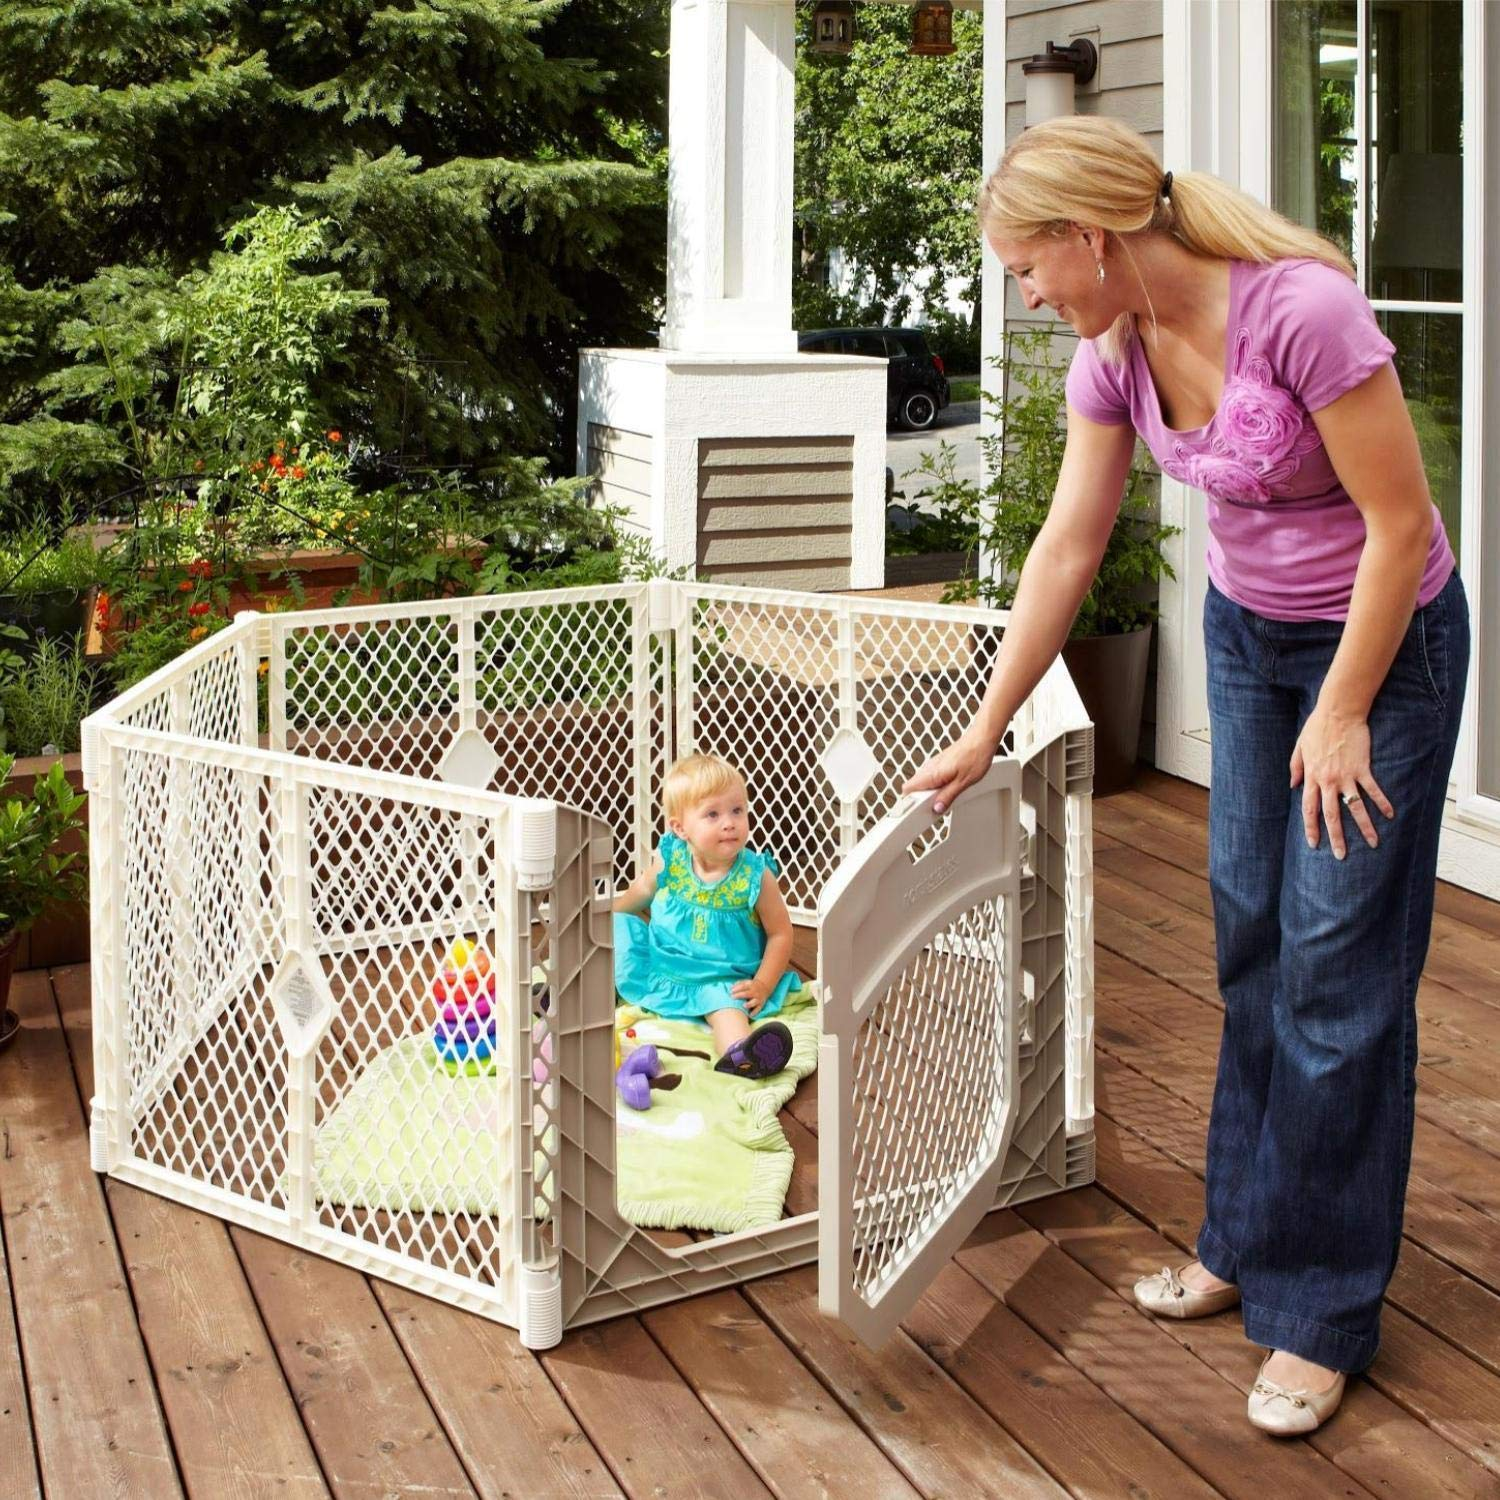 North States Superyard Ultimate 6-Panel Play Yard: Safe Play Area for Indoors or Outdoors - Folds up with Carrying Strap for Easy Travel. Freestanding. 18.5 sq. ft. Enclosure (26'' Tall, Ivory)